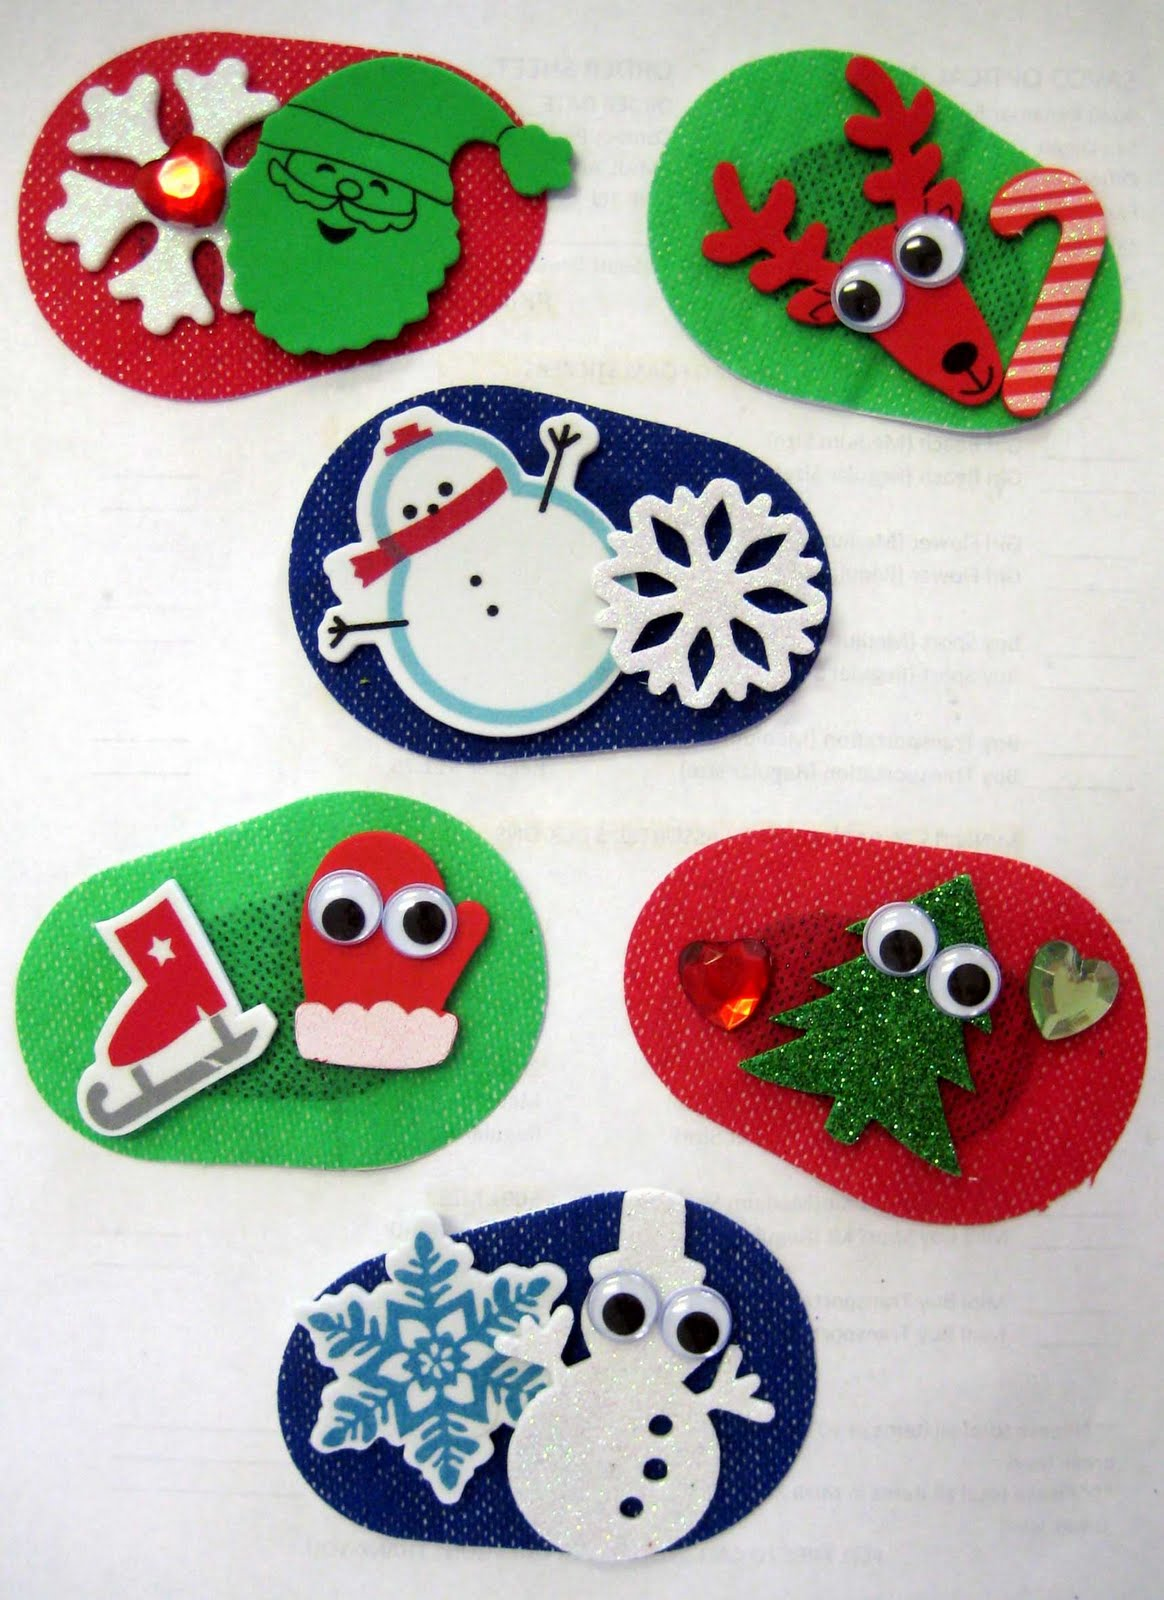 Kids Eye Patches: Childrens Vision Care eBay